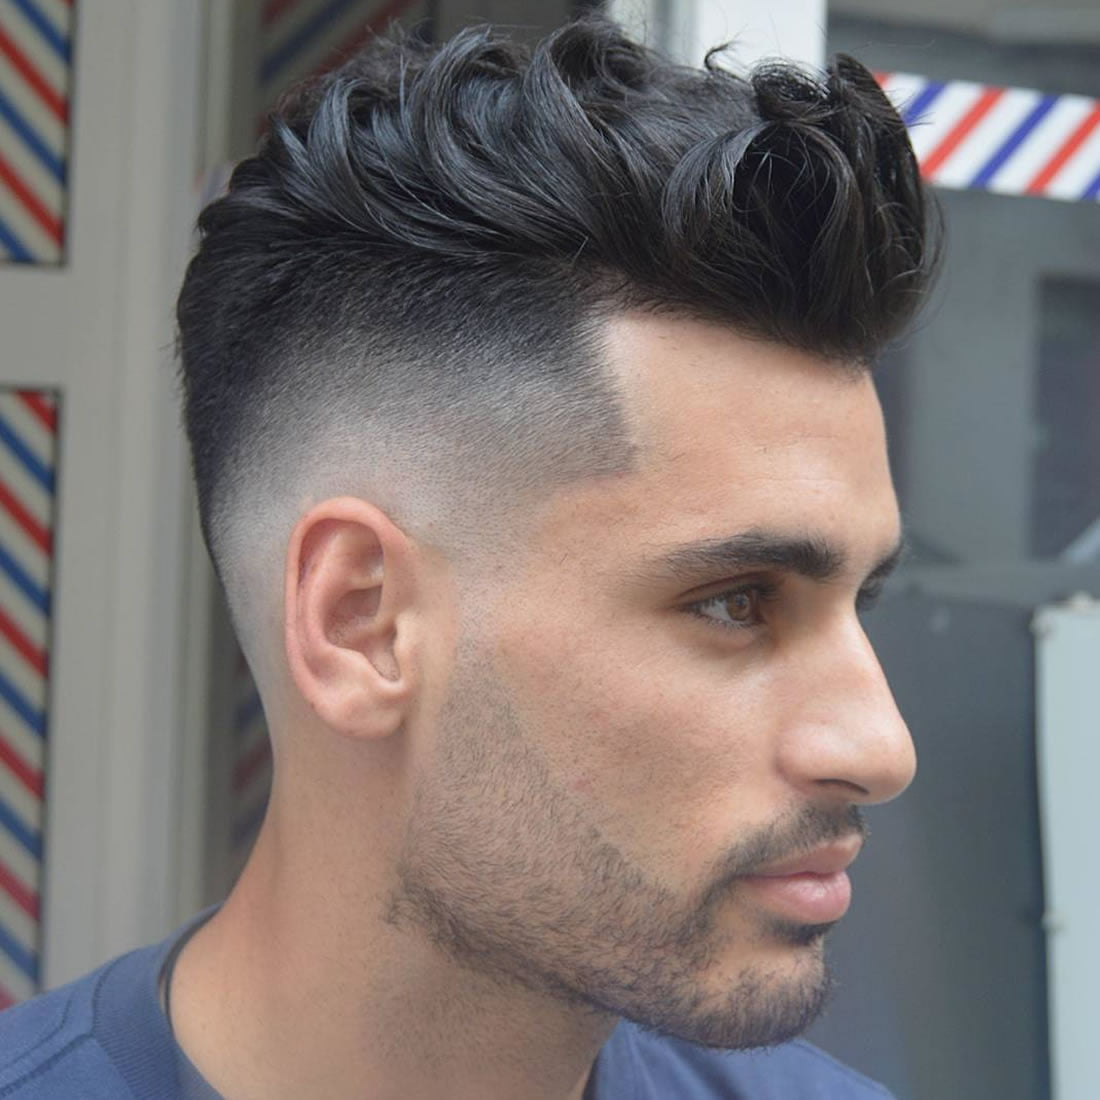 Discussion on this topic: Top Men's Hairstyles for 2019, top-mens-hairstyles-for-2019/